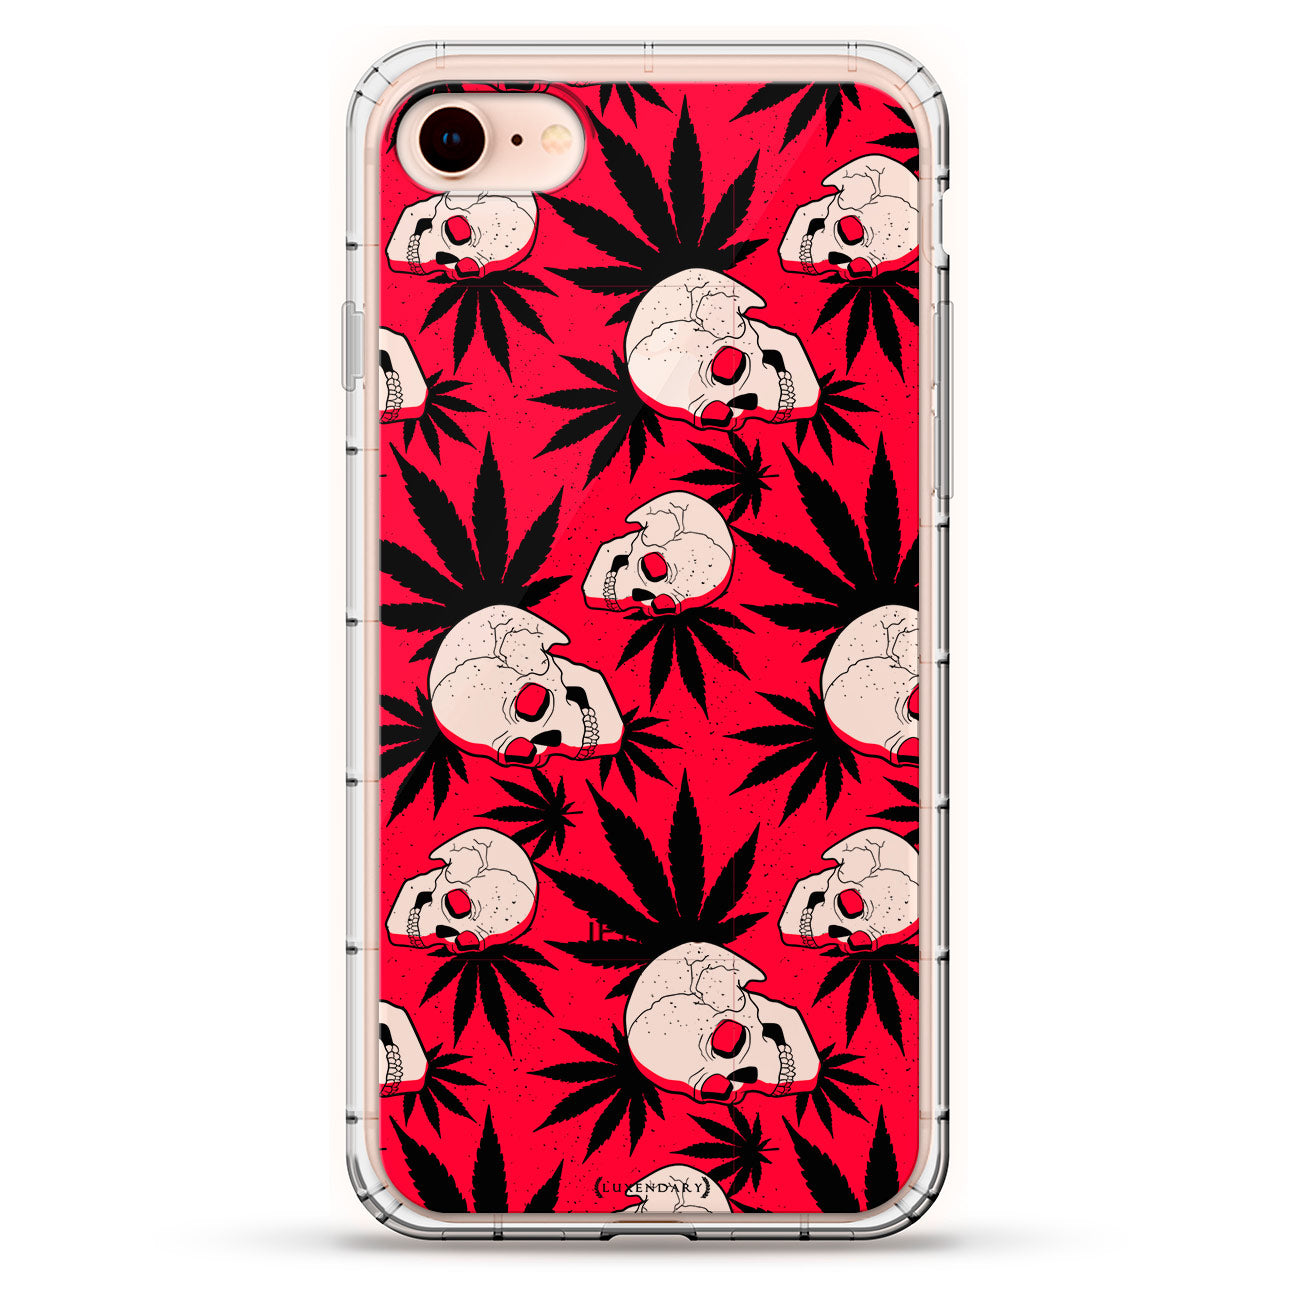 Red and Black Skulls and Pot Leaves